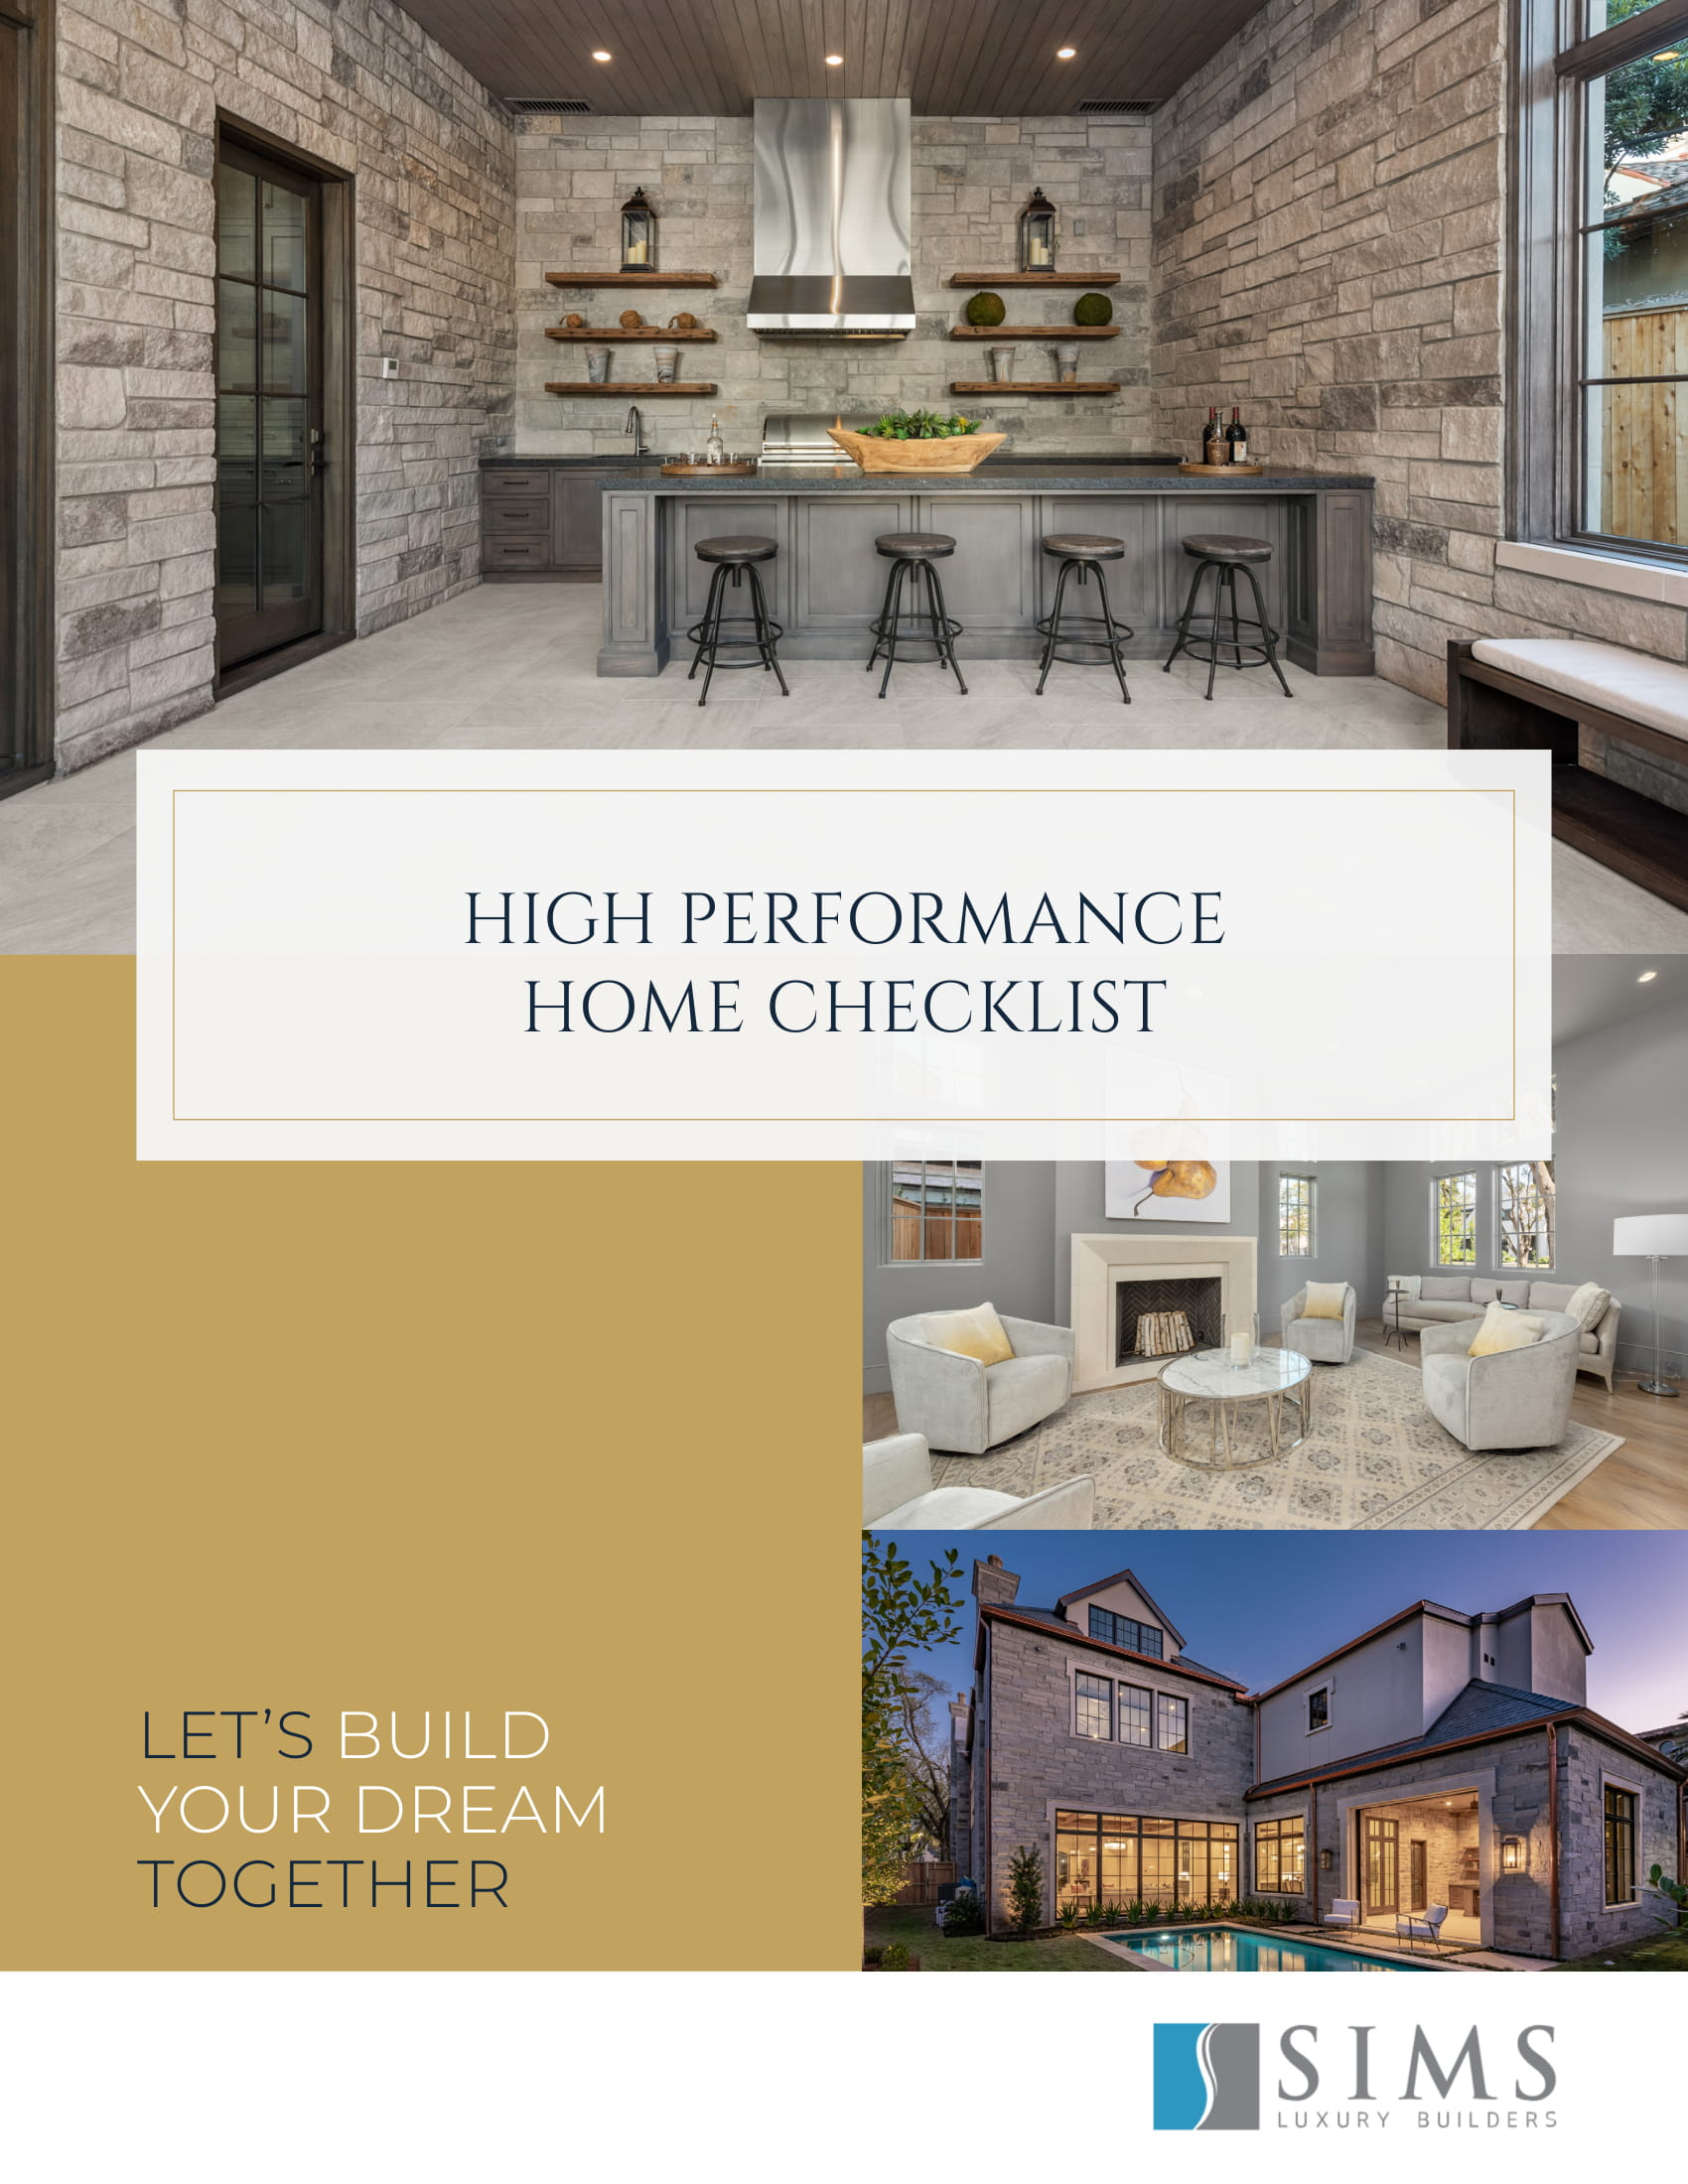 High Performance Home Checklist